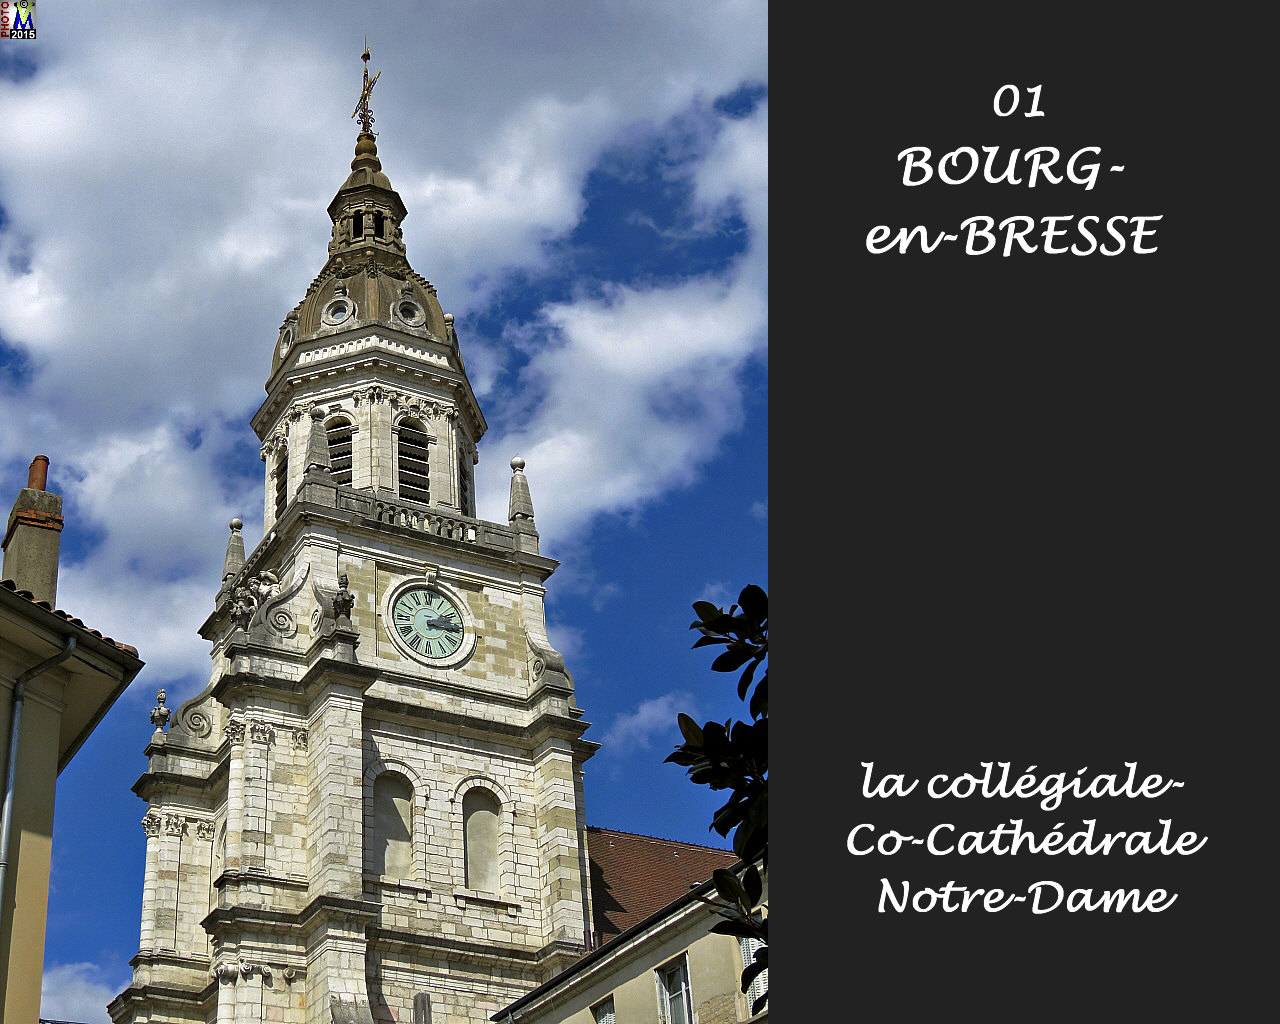 01BOURG-BRESSE_cathedrale_110.jpg